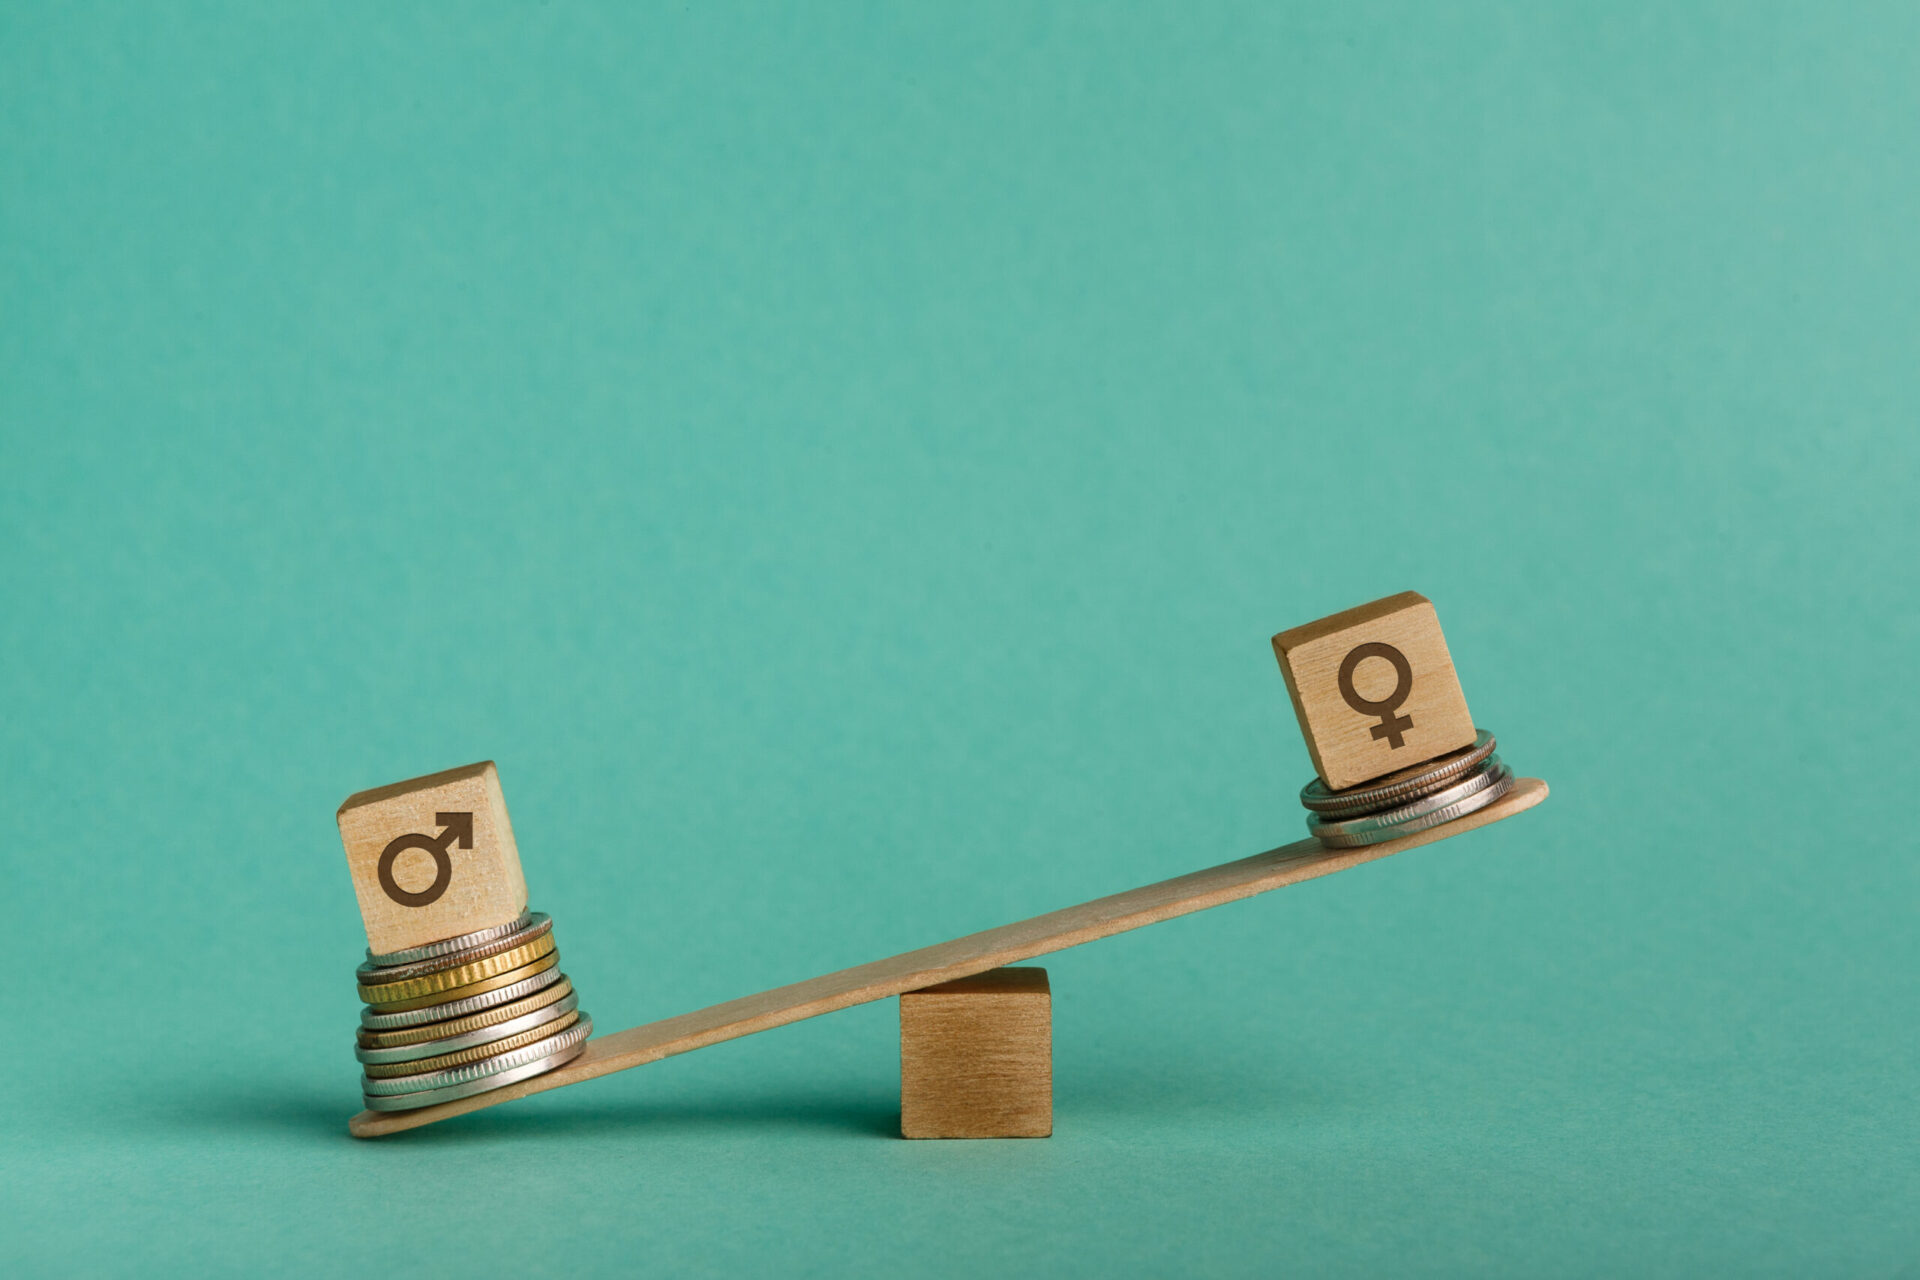 Illustration of gender pay gap with money and seesaw